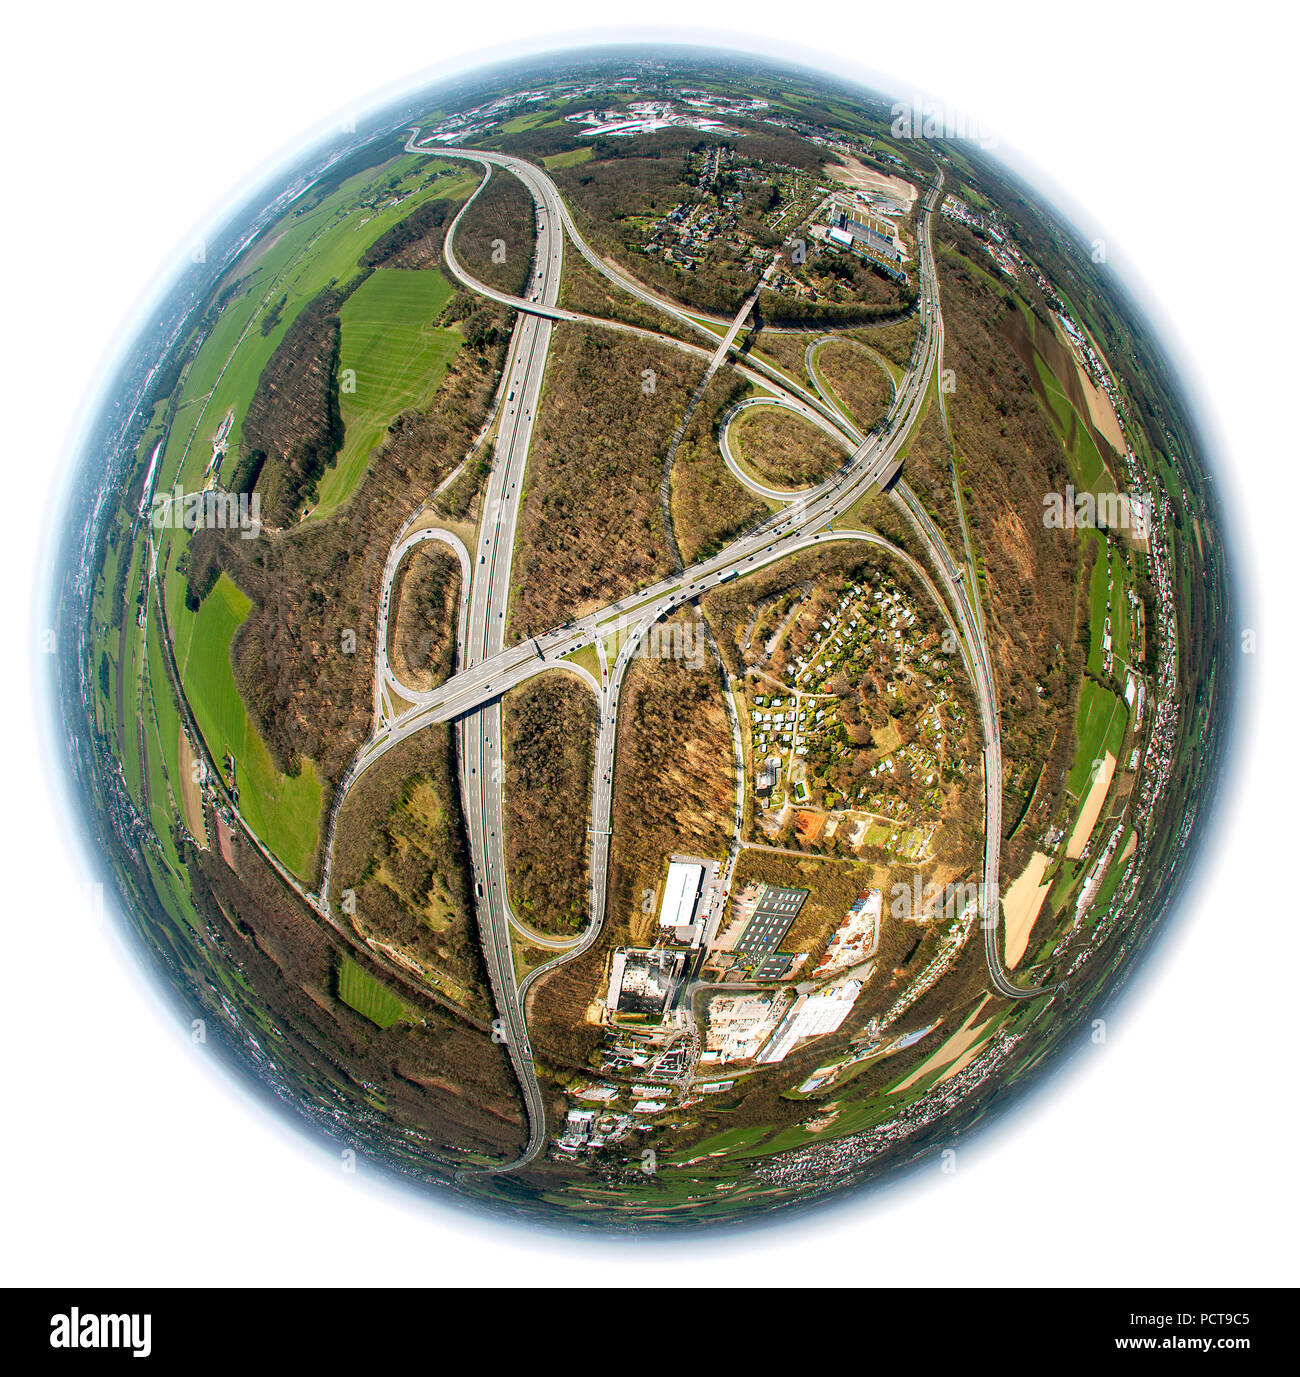 Autobahnkreuz Wuppertal Nord interchange, A1 and A43 and A46 Autobahnen (motorways) at Sprockhövel Haßlinghausen, aerial photo, fisheye lens, Ruhr area - Stock Image